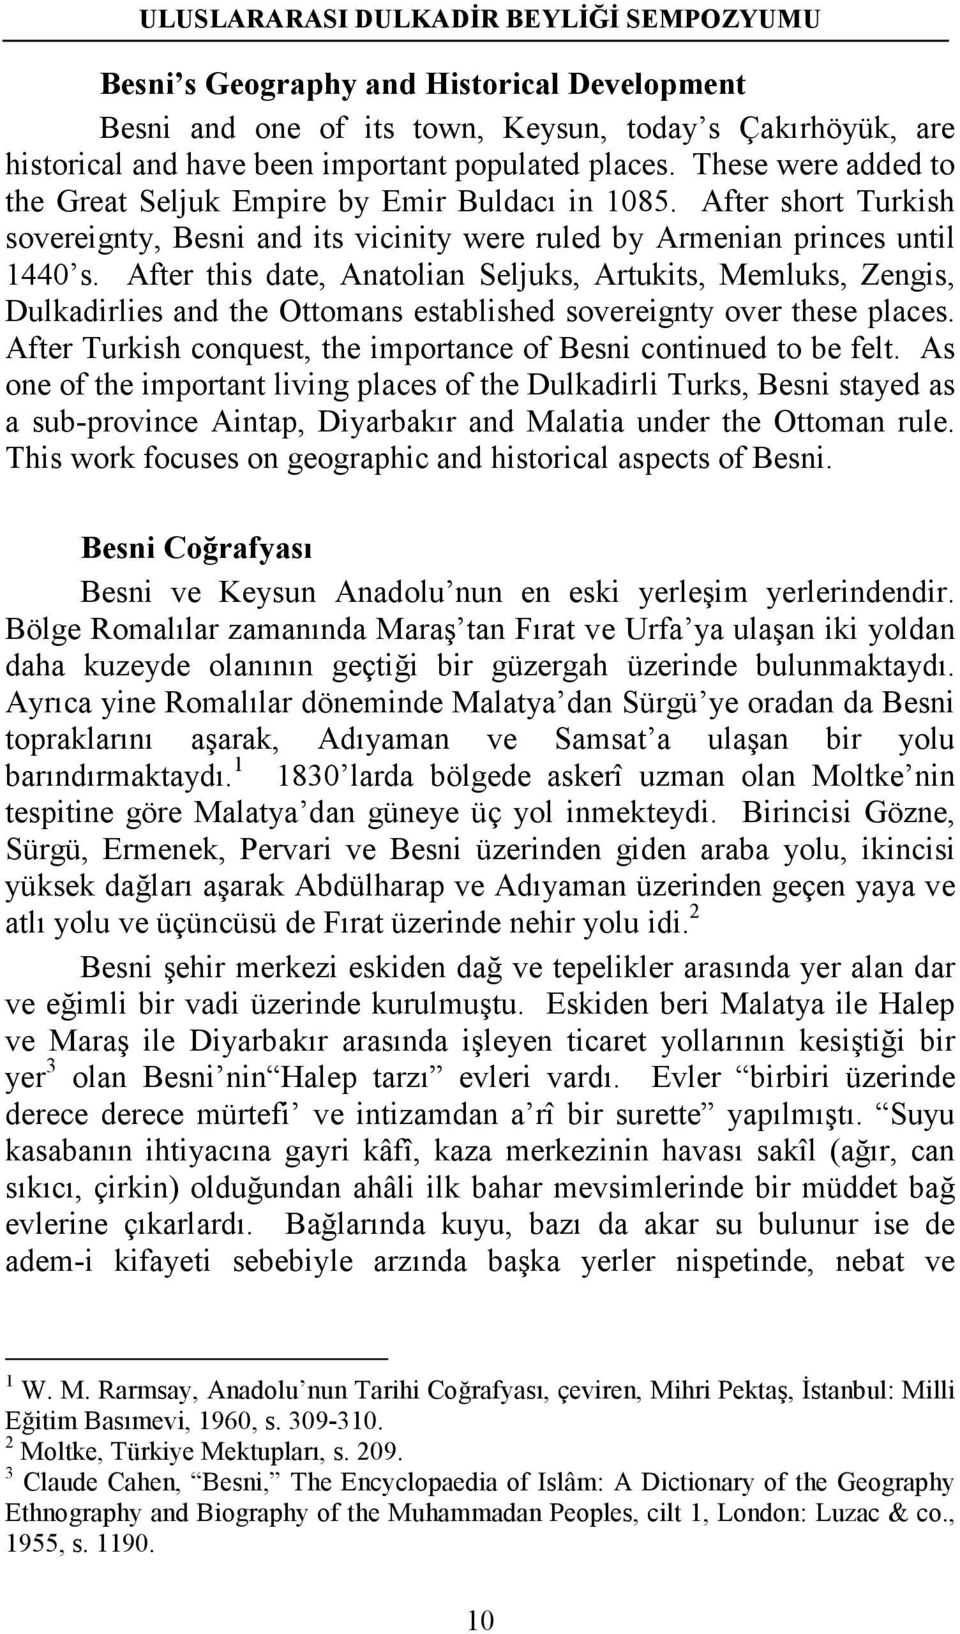 After this date, Anatolian Seljuks, Artukits, Memluks, Zengis, Dulkadirlies and the Ottomans established sovereignty over these places.